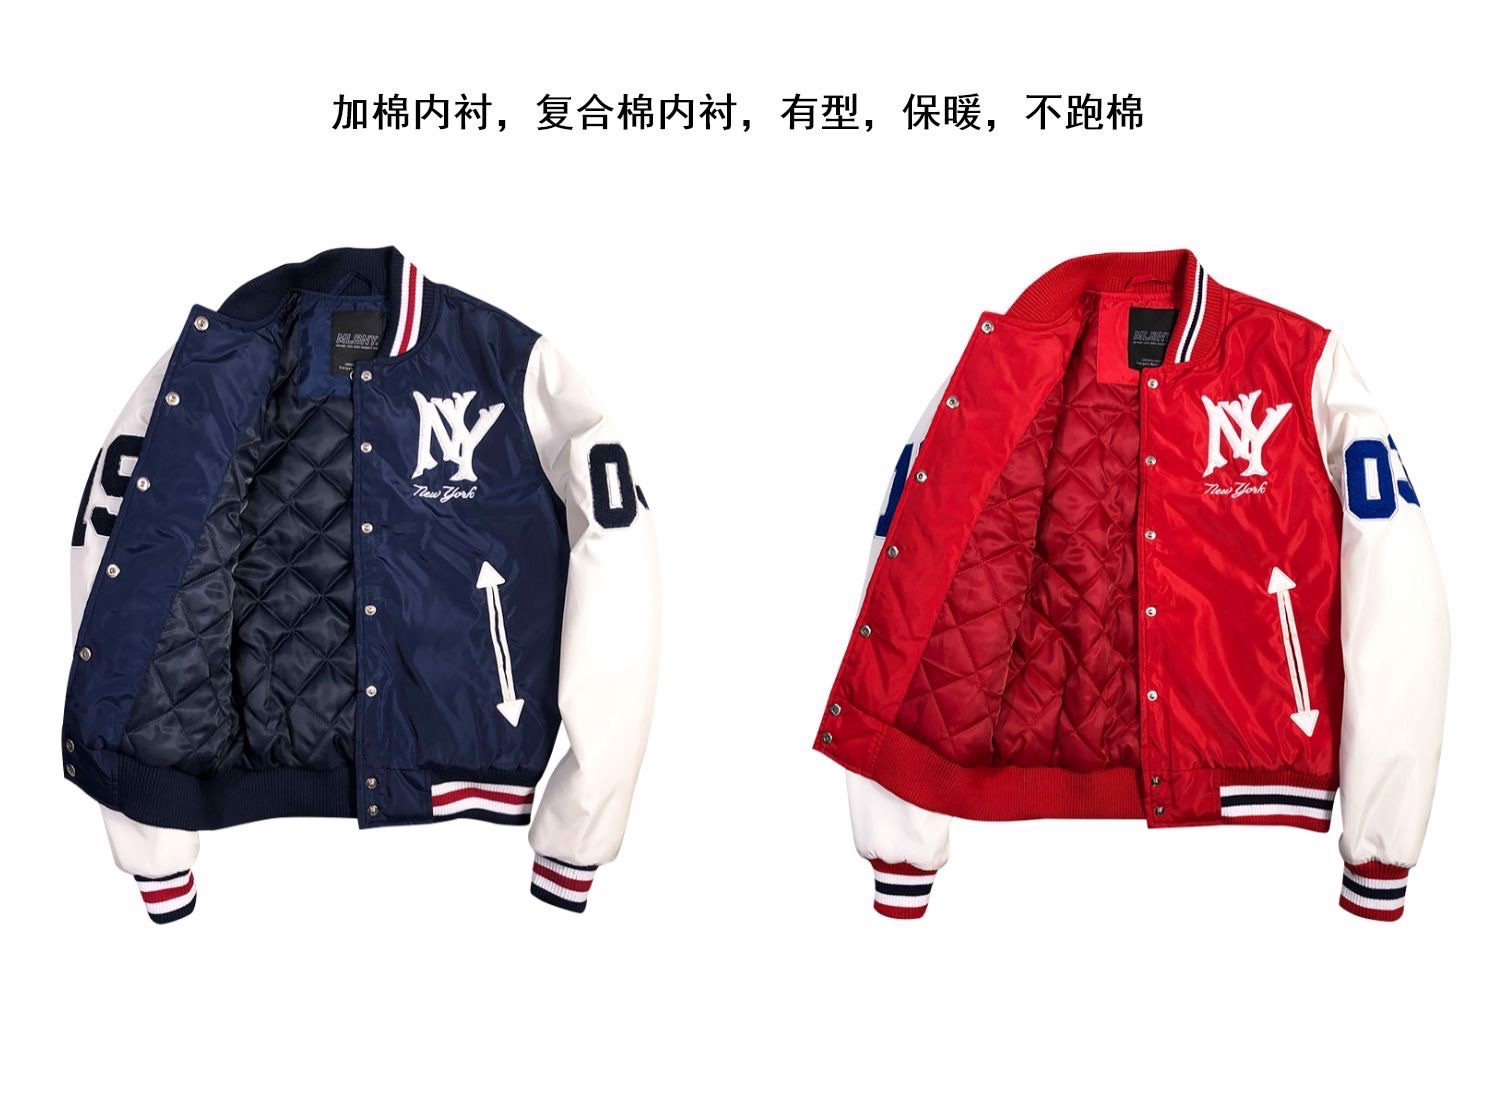 P100238 ÁO KHOÁC BASEBALL JACKET MLBNY CHINA 1903 - RED